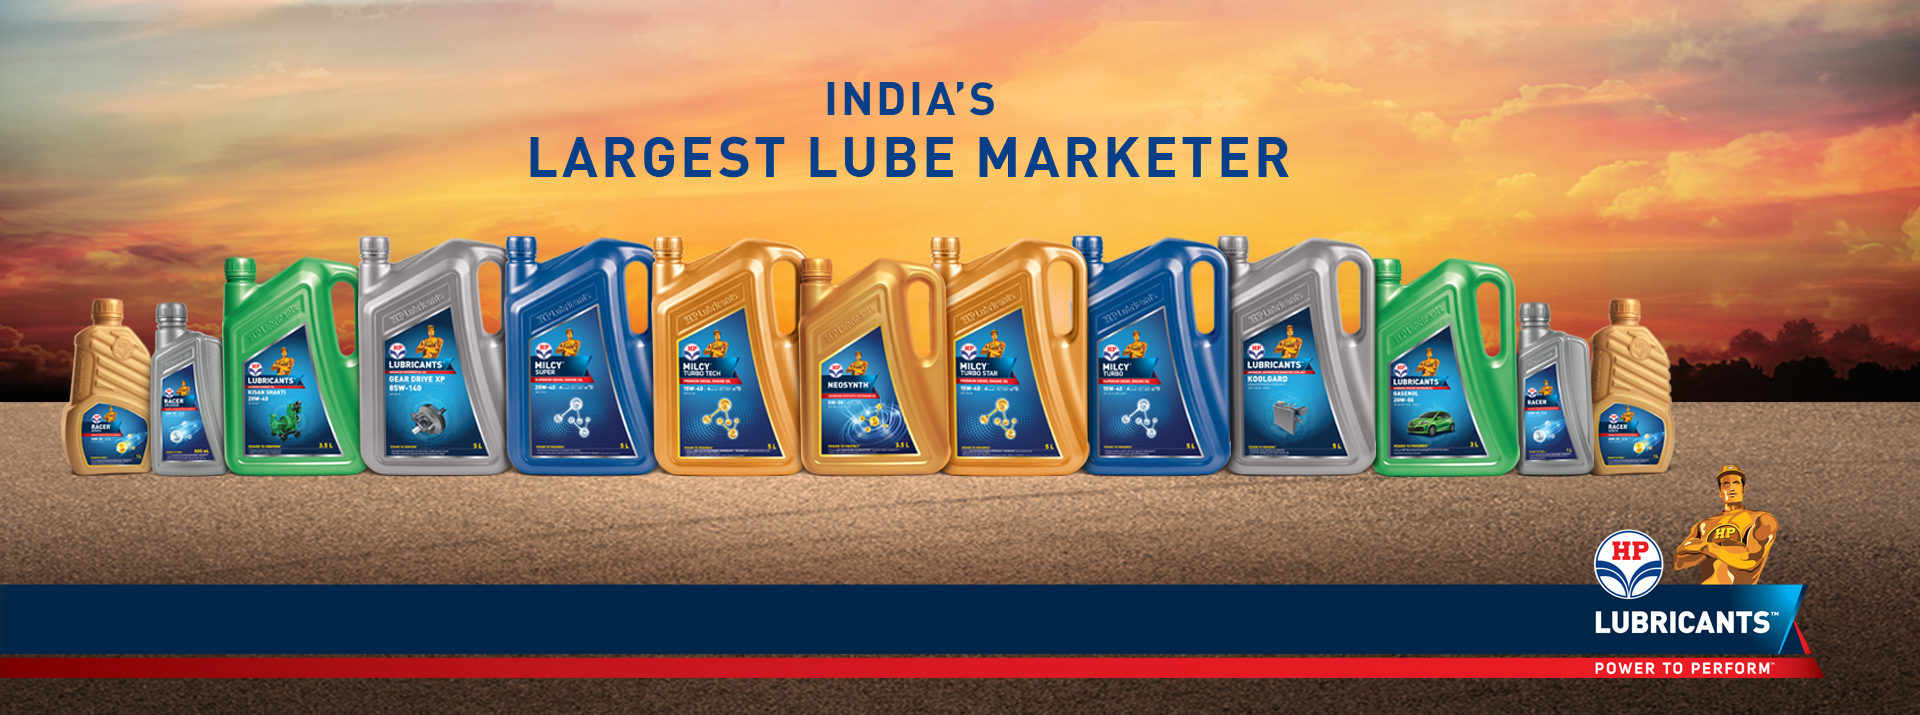 India's largest Lube Marketer